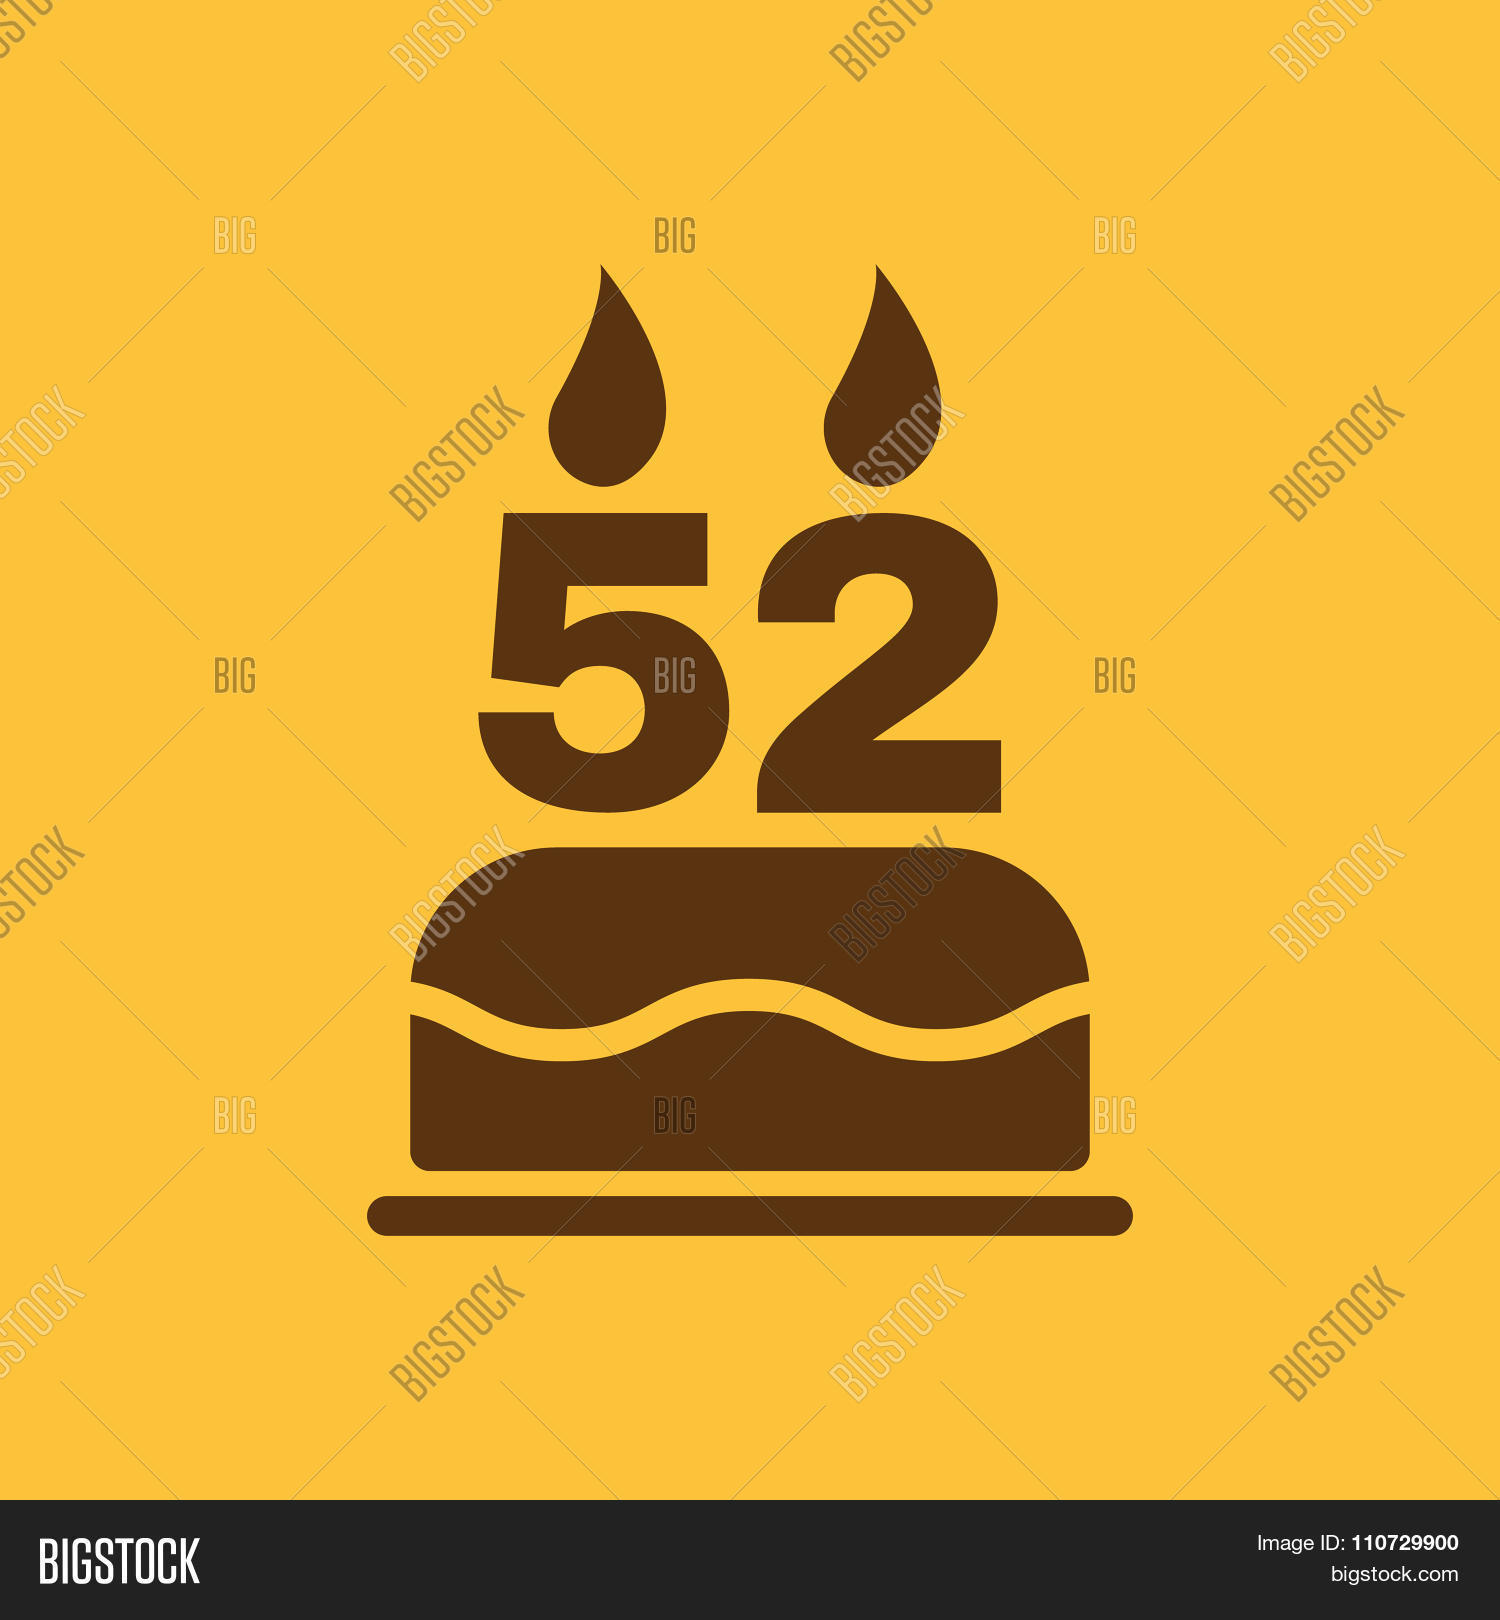 The Birthday Cake With Candles In The Form Of Number 52 Icon